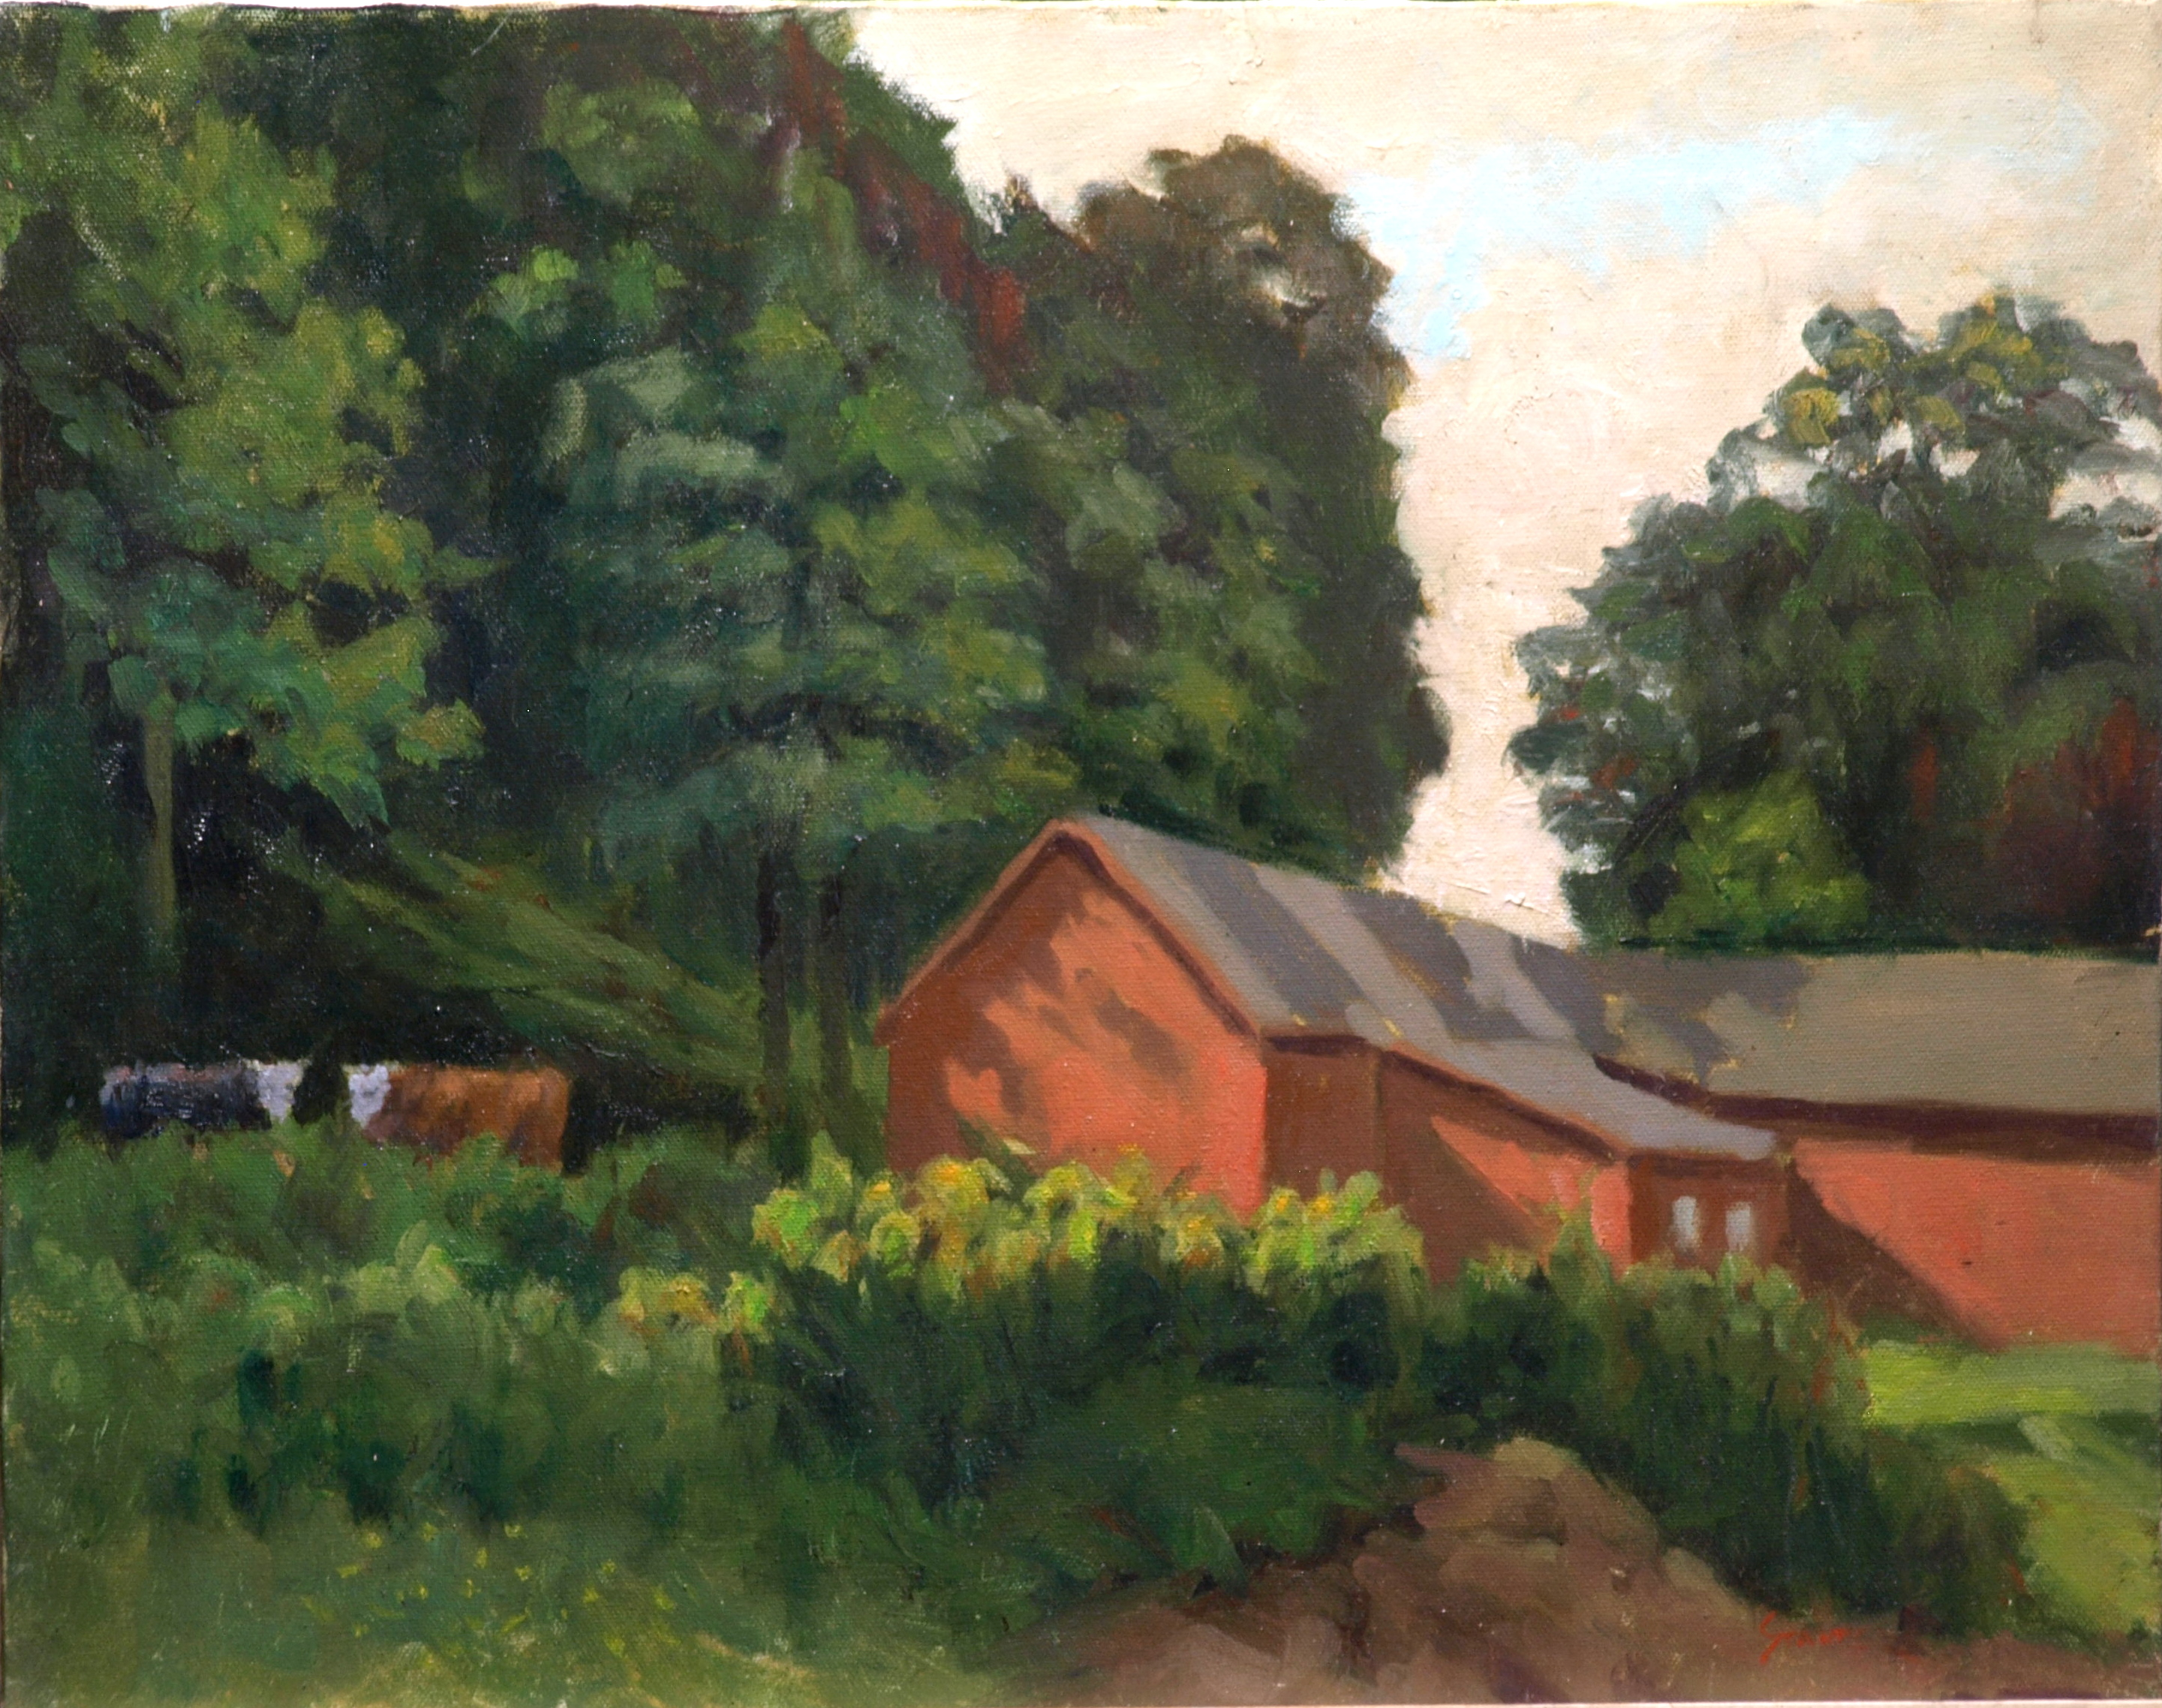 Milking Time, Oil on Canvas, 16 x 20 Inches, by Richard Stalter, $450